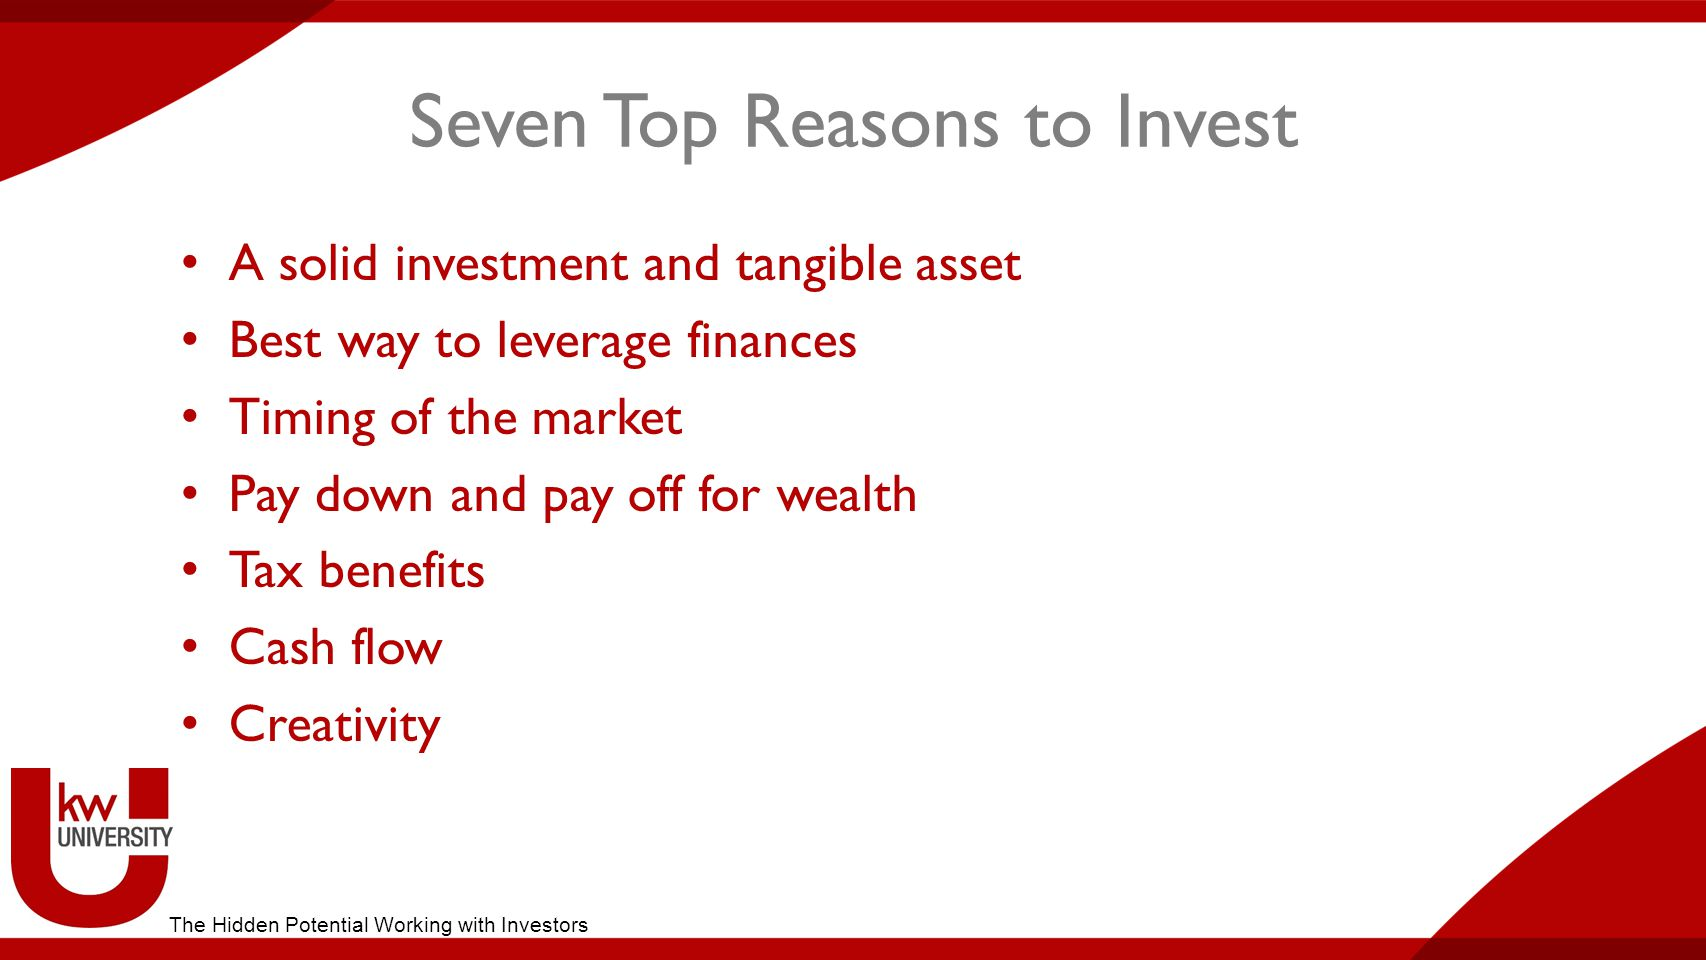 Seven Top Reasons to Invest A solid investment and tangible asset Best way to leverage finances Timing of the market Pay down and pay off for wealth Tax benefits Cash flow Creativity The Hidden Potential Working with Investors